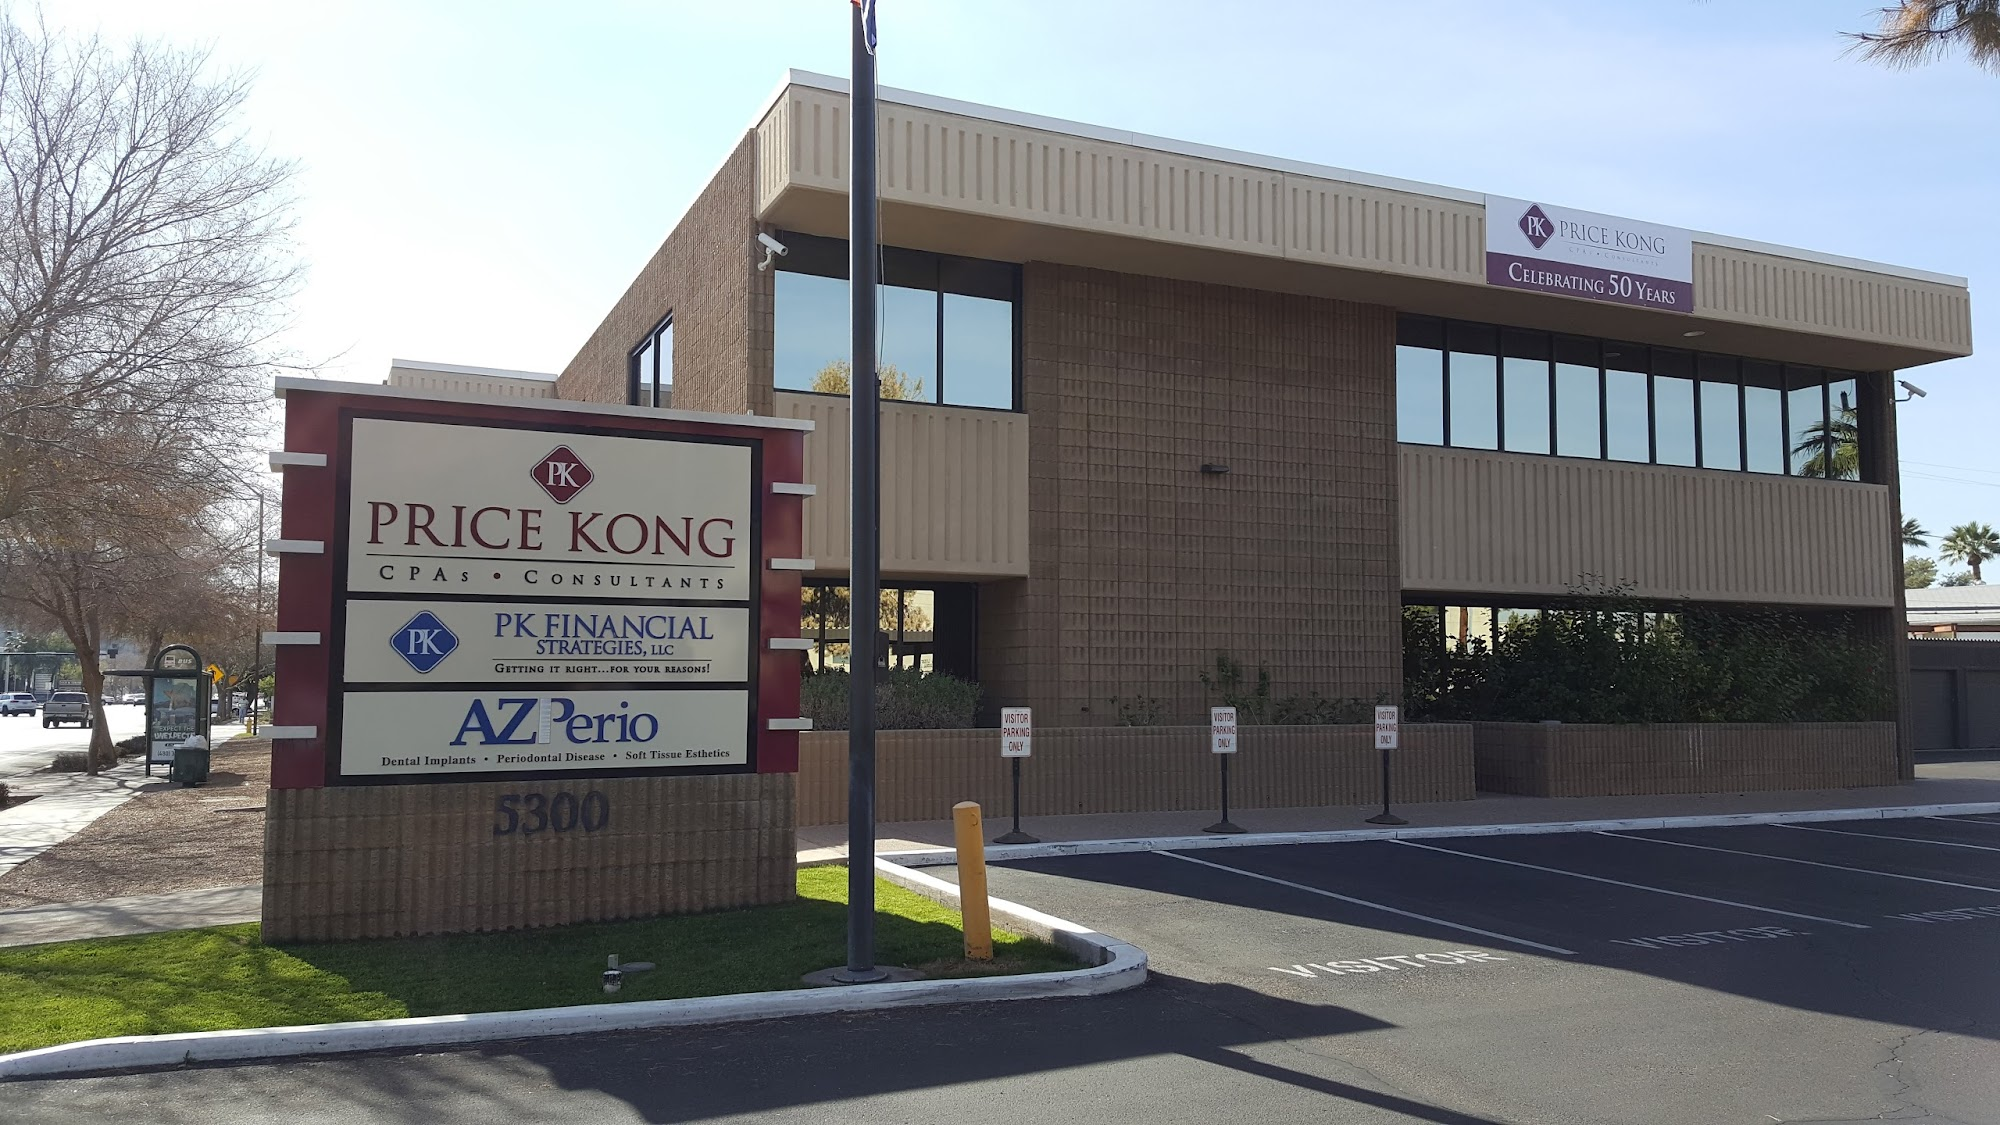 Price Kong CPAs, Consultants 5300 N Central Ave #200, Phoenix